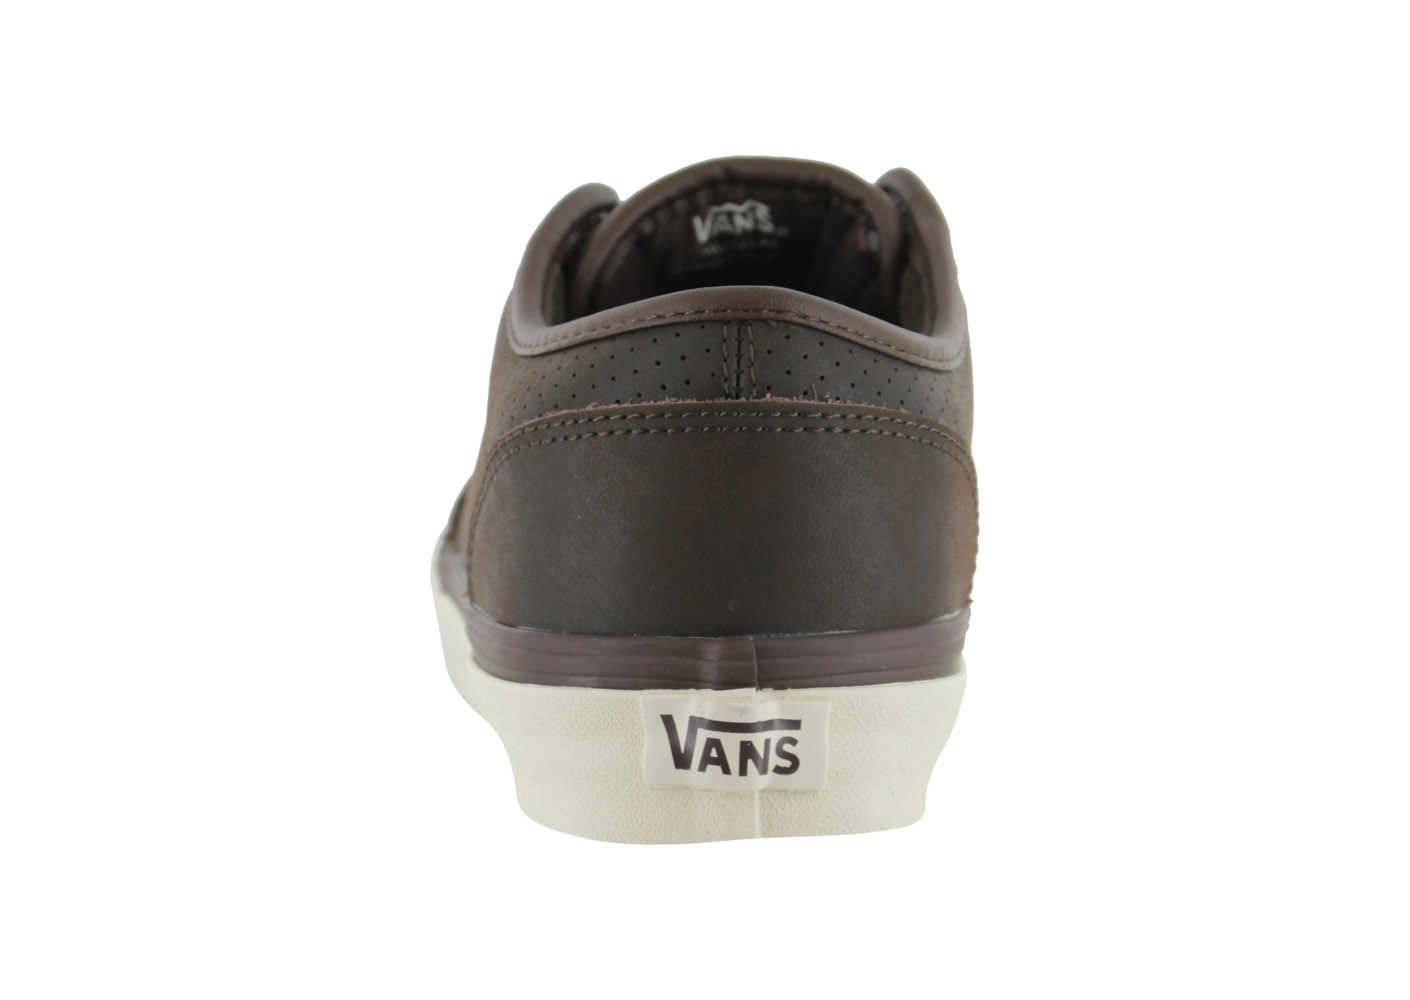 Vans Atwood Cuir Marron - Chaussures Baskets homme - Chausport